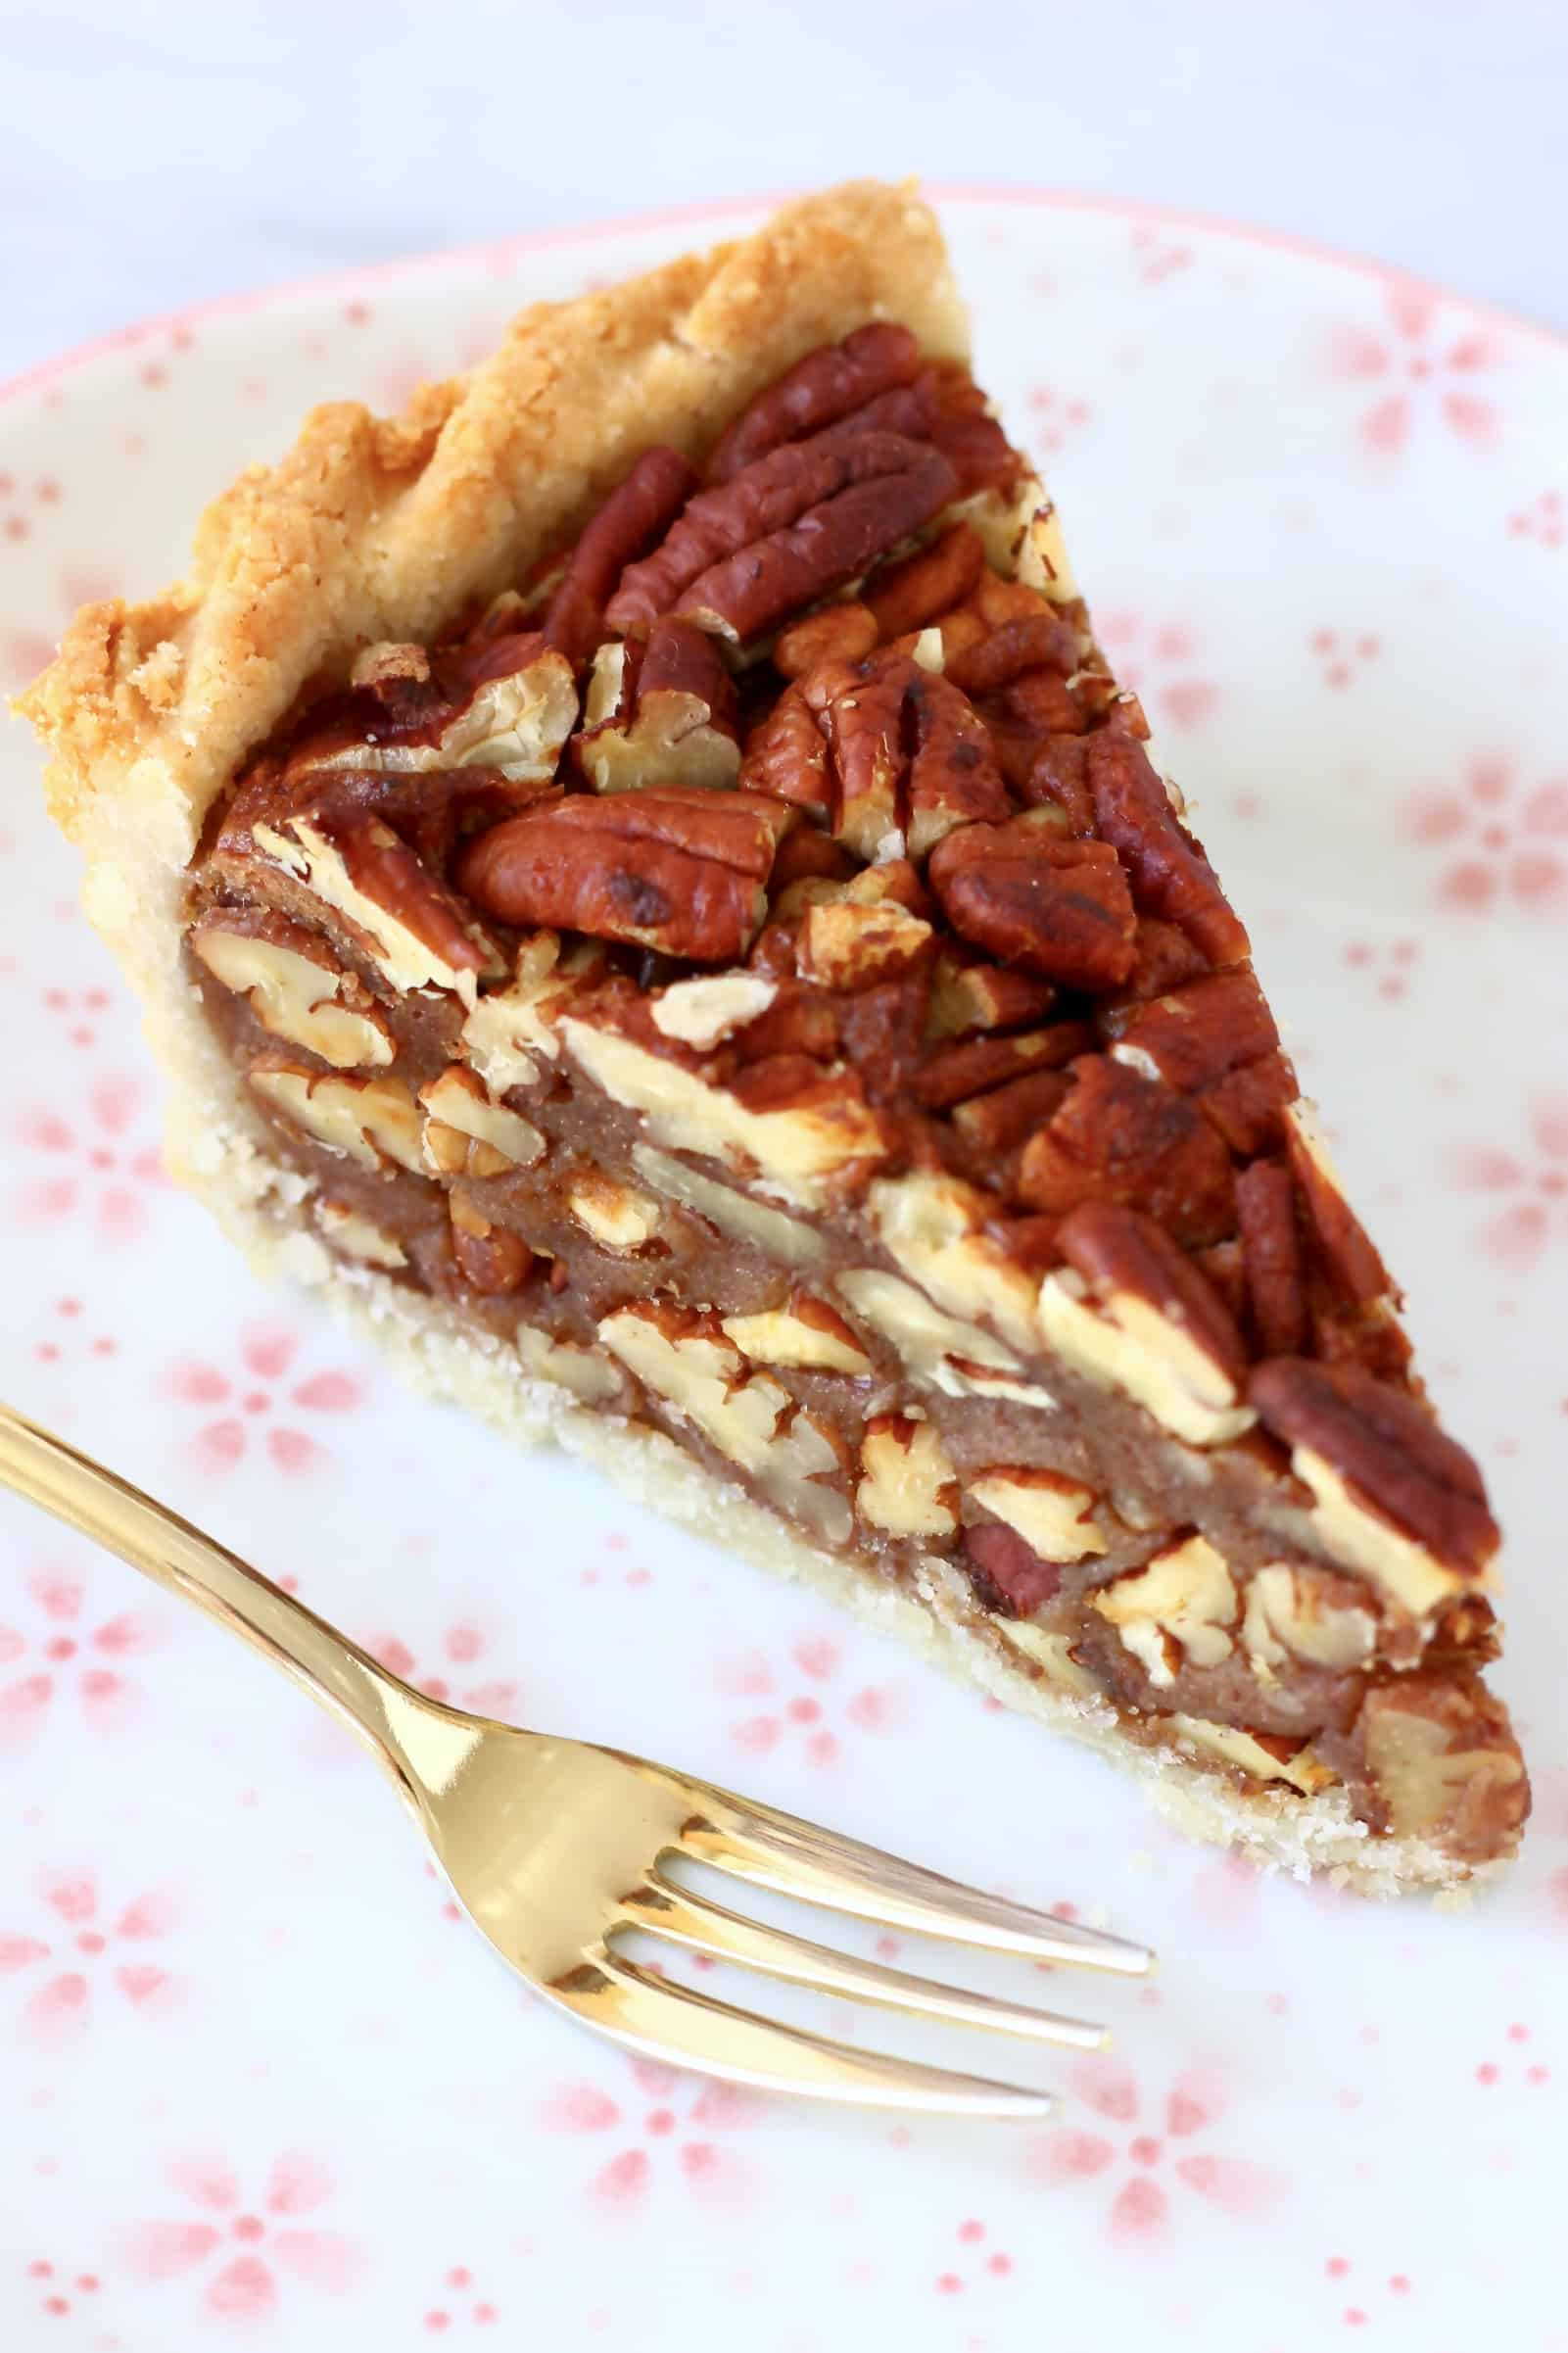 A slice of gluten-free vegan pecan pie on a plate with a gold fork